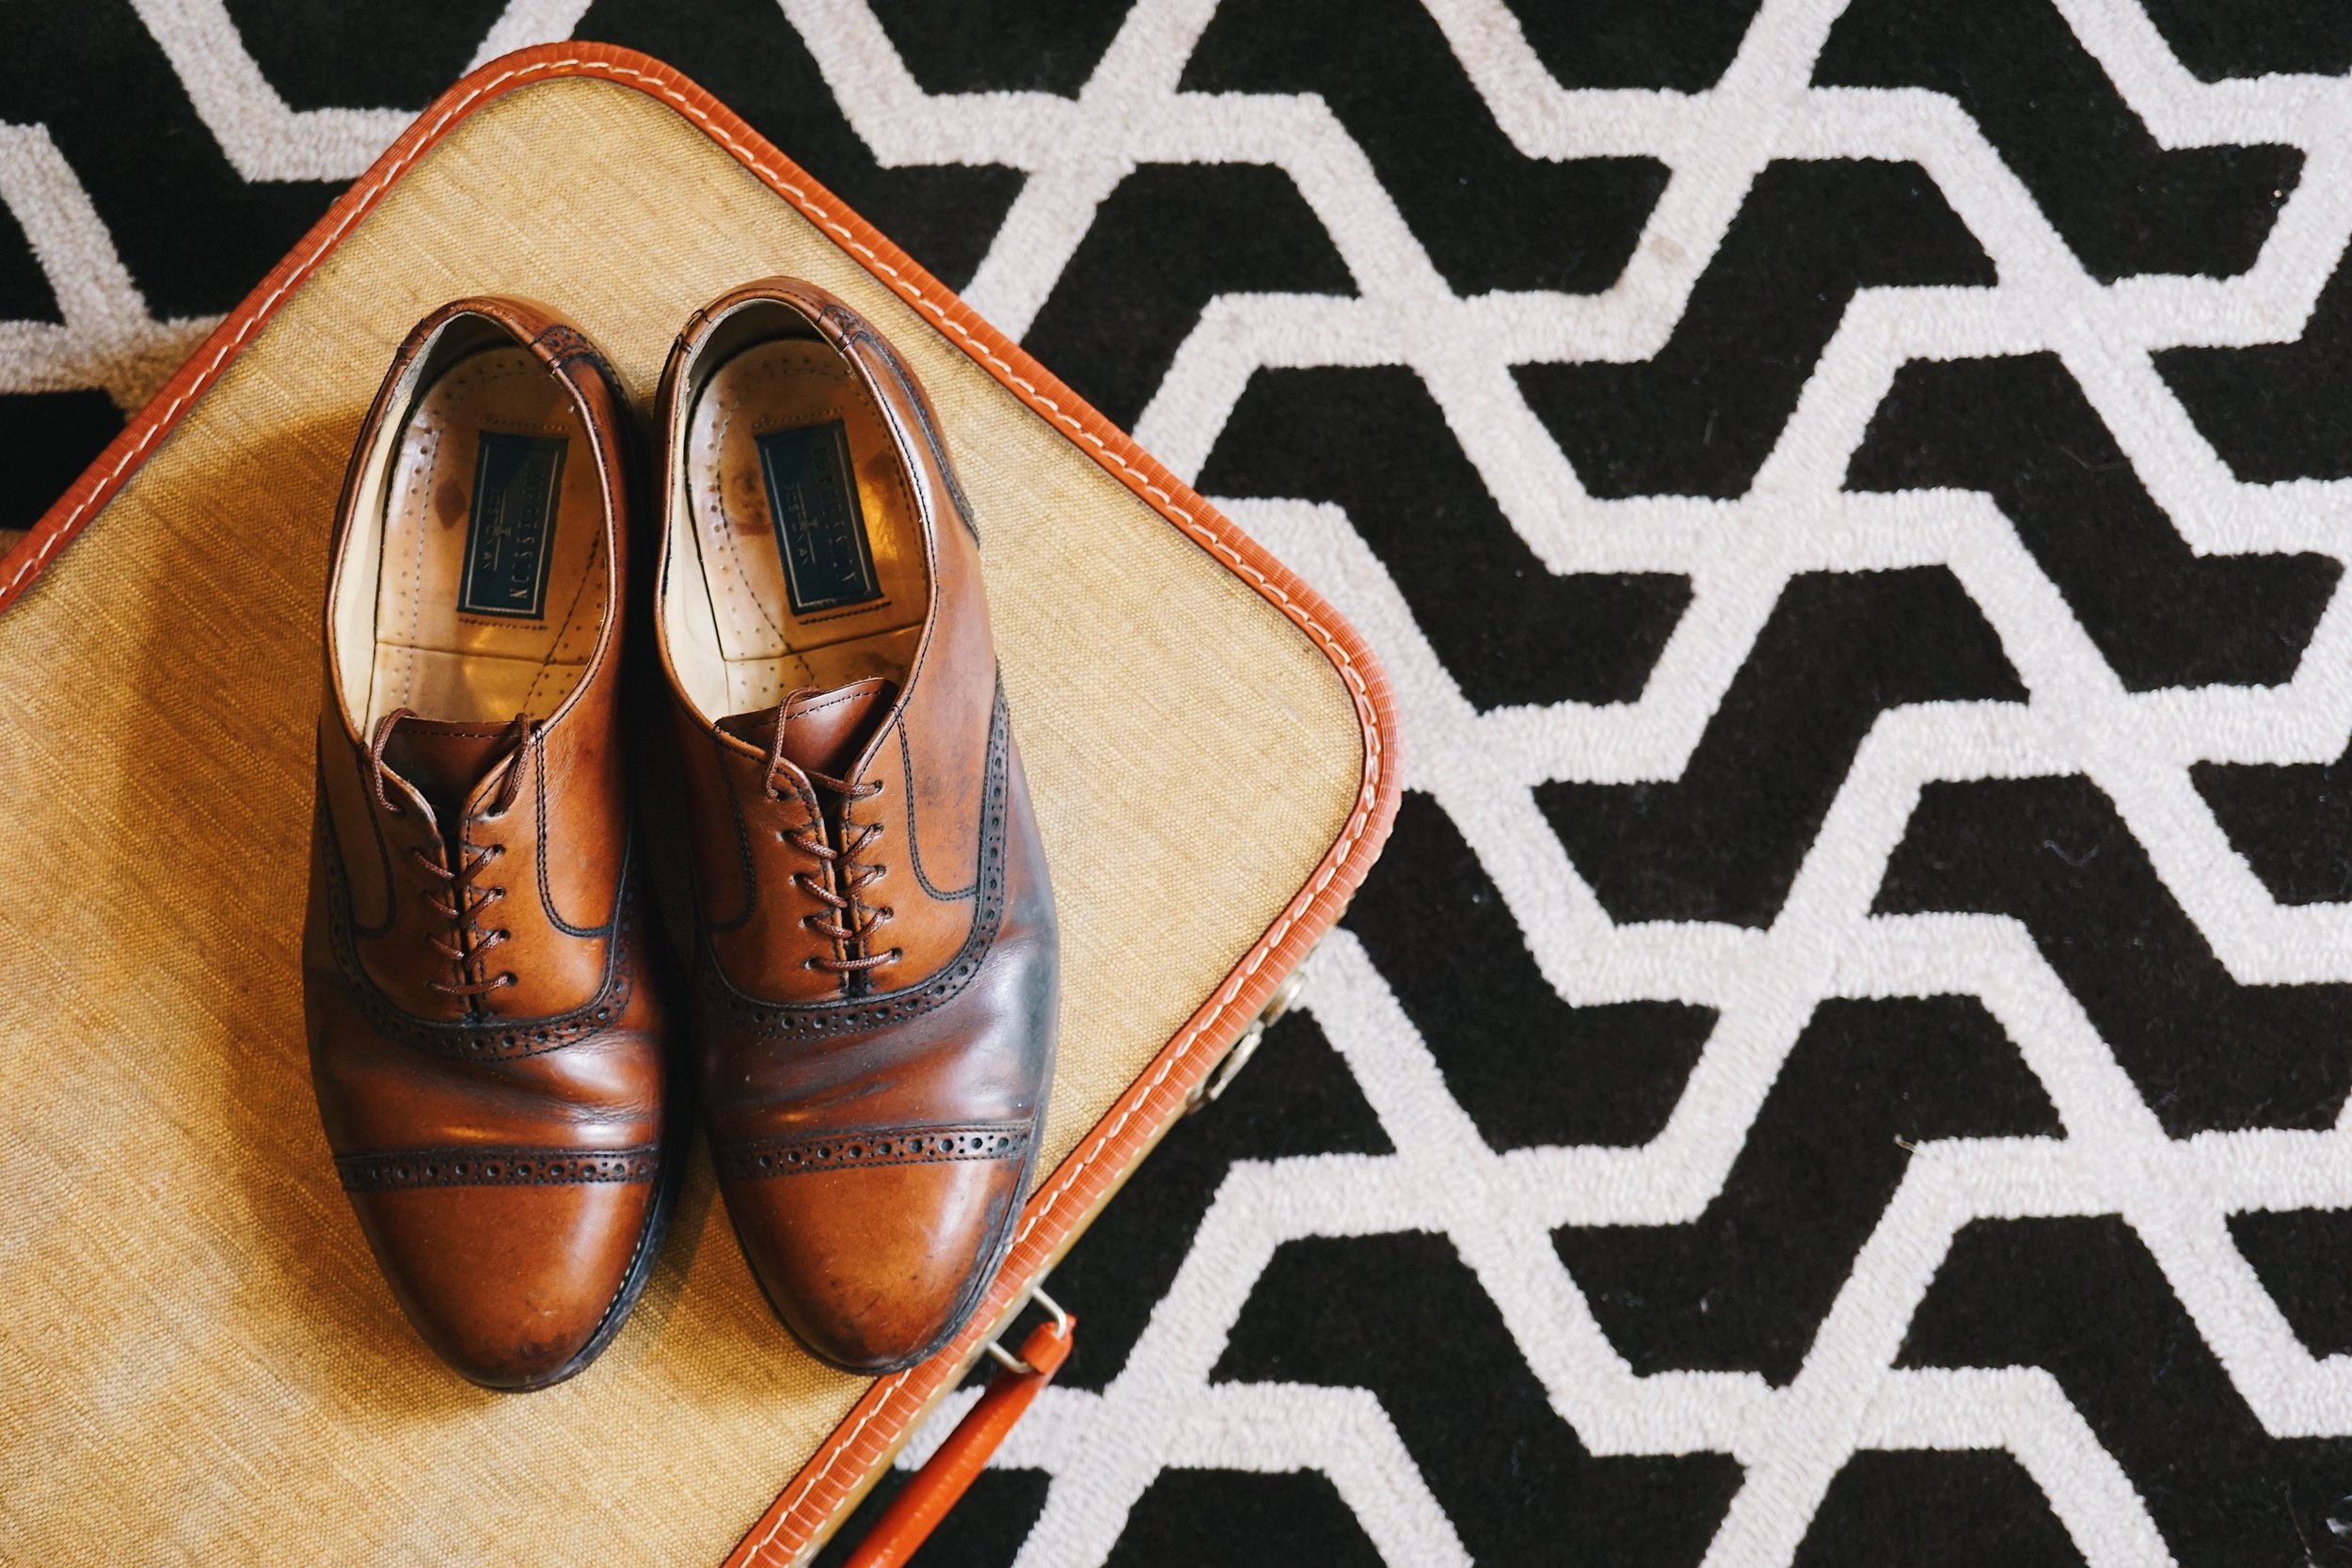 Vintage leather shoes from  Owls Attic.